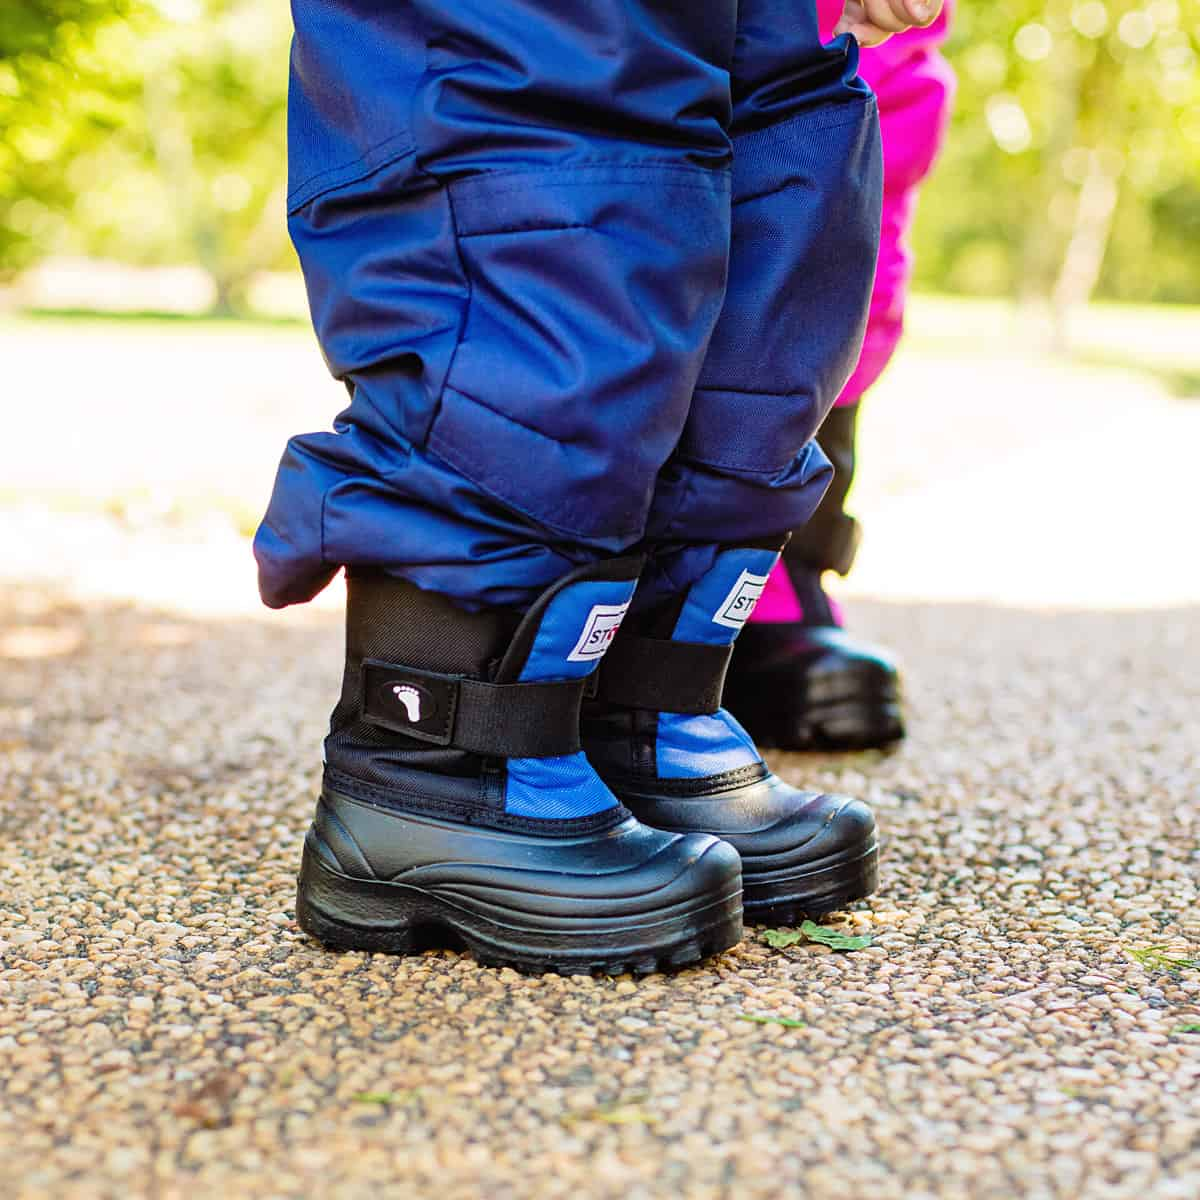 Daily Mom parents portal holiday 2018 Stonz Kids Winter Boots New Shoes